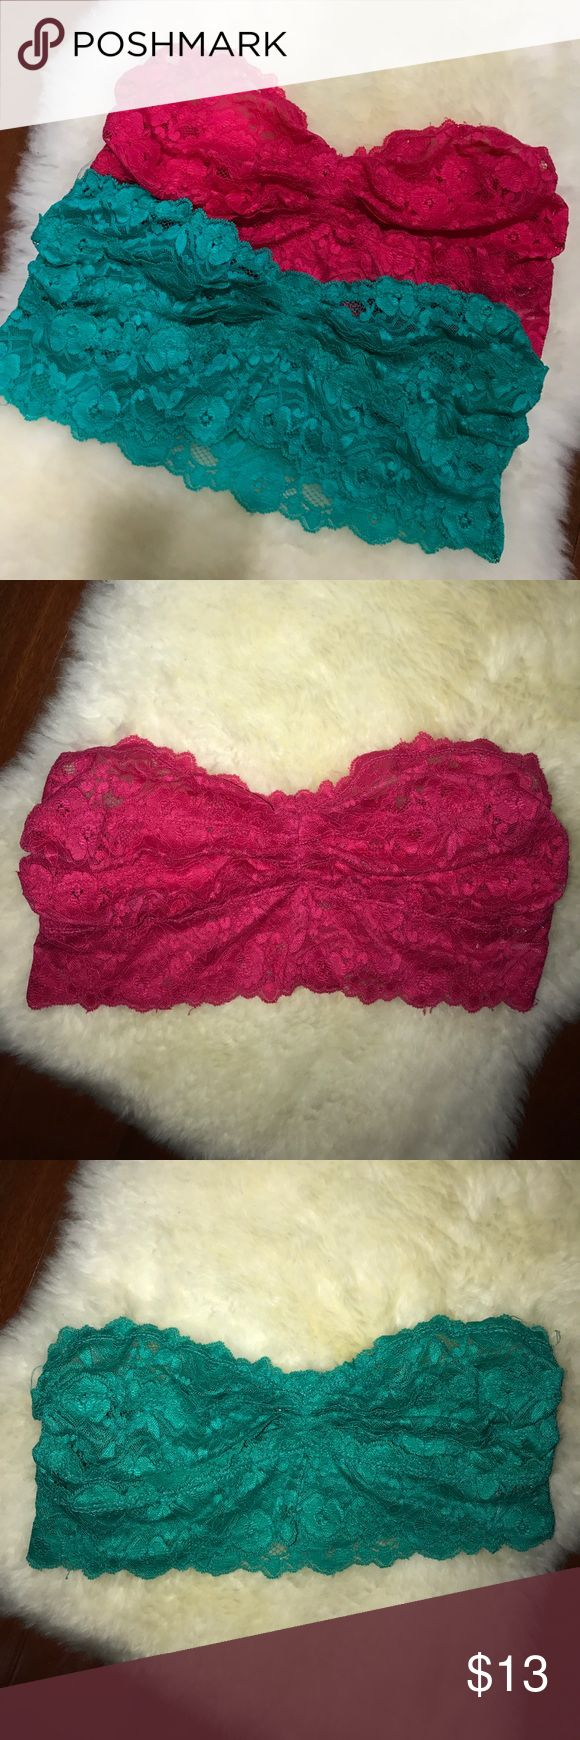 Floral Lace Bandeau Tops Perfect for any festival outings or beach parties! Colorful, comfy & sexy, these tops will stand out. Size Large but can fit a B/C cup. I am a size 36D & these fit perfect & give my girlies a little lift. Worn each one once for EDC & EZOO festivals. Washed. This includes both pink & turquoise tops together, please contact me if you want to buy one separately. Foxy Lady Tops Crop Tops